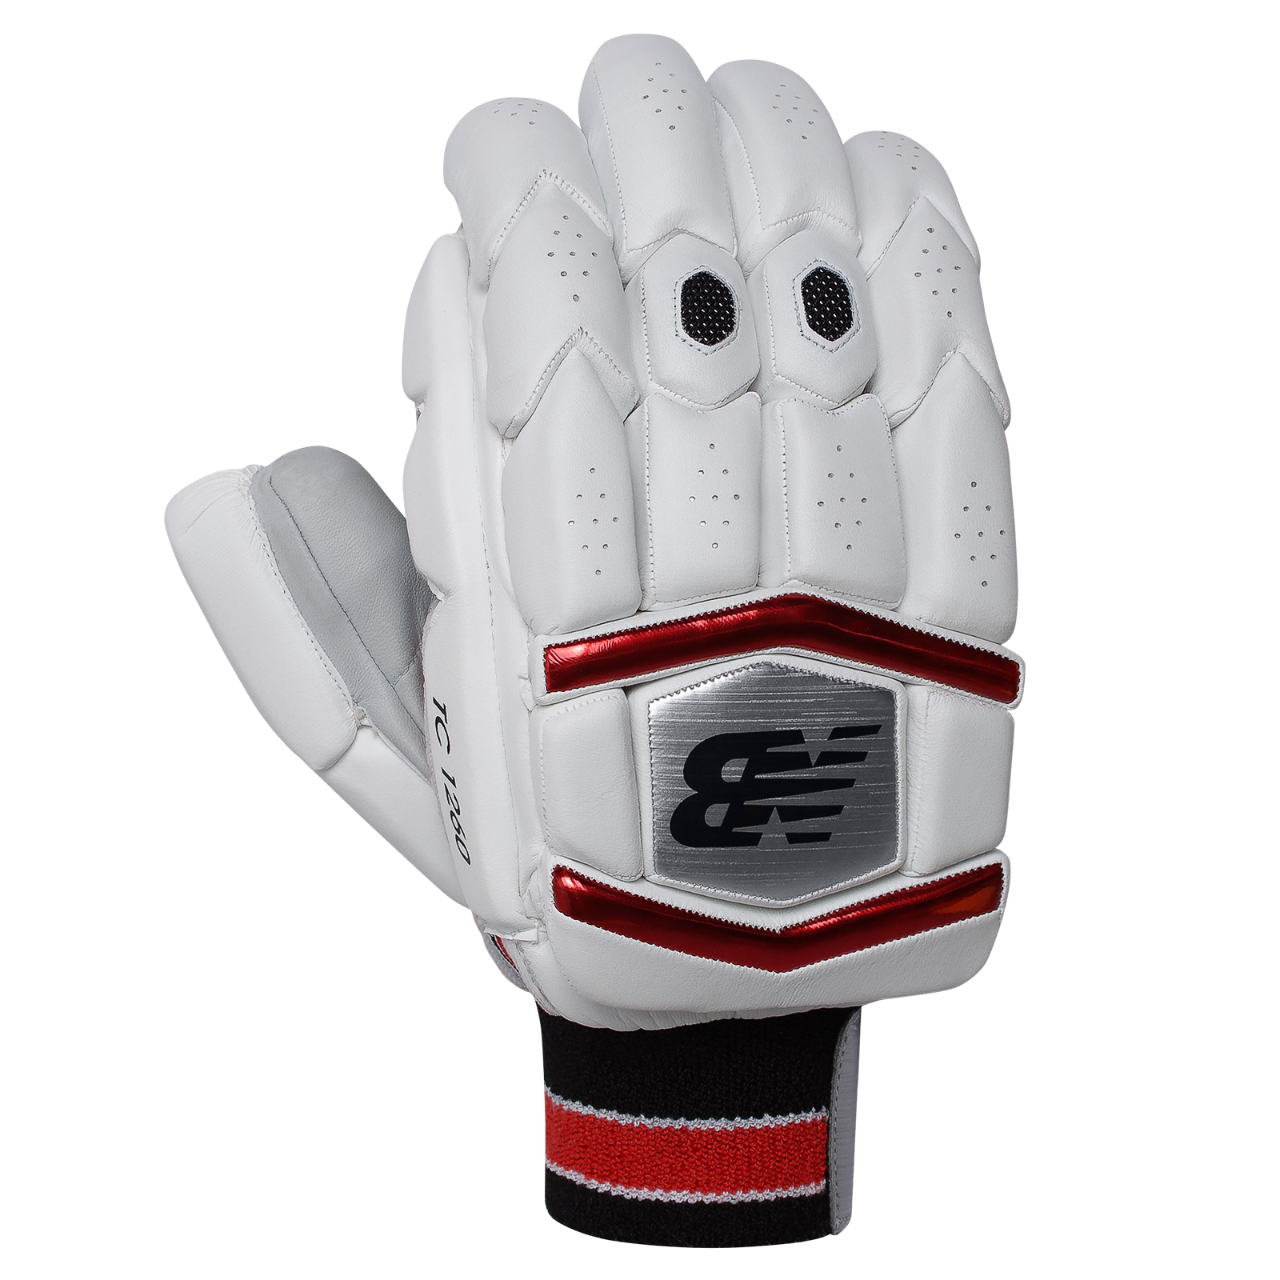 2020 New Balance TC 1260 Batting Gloves